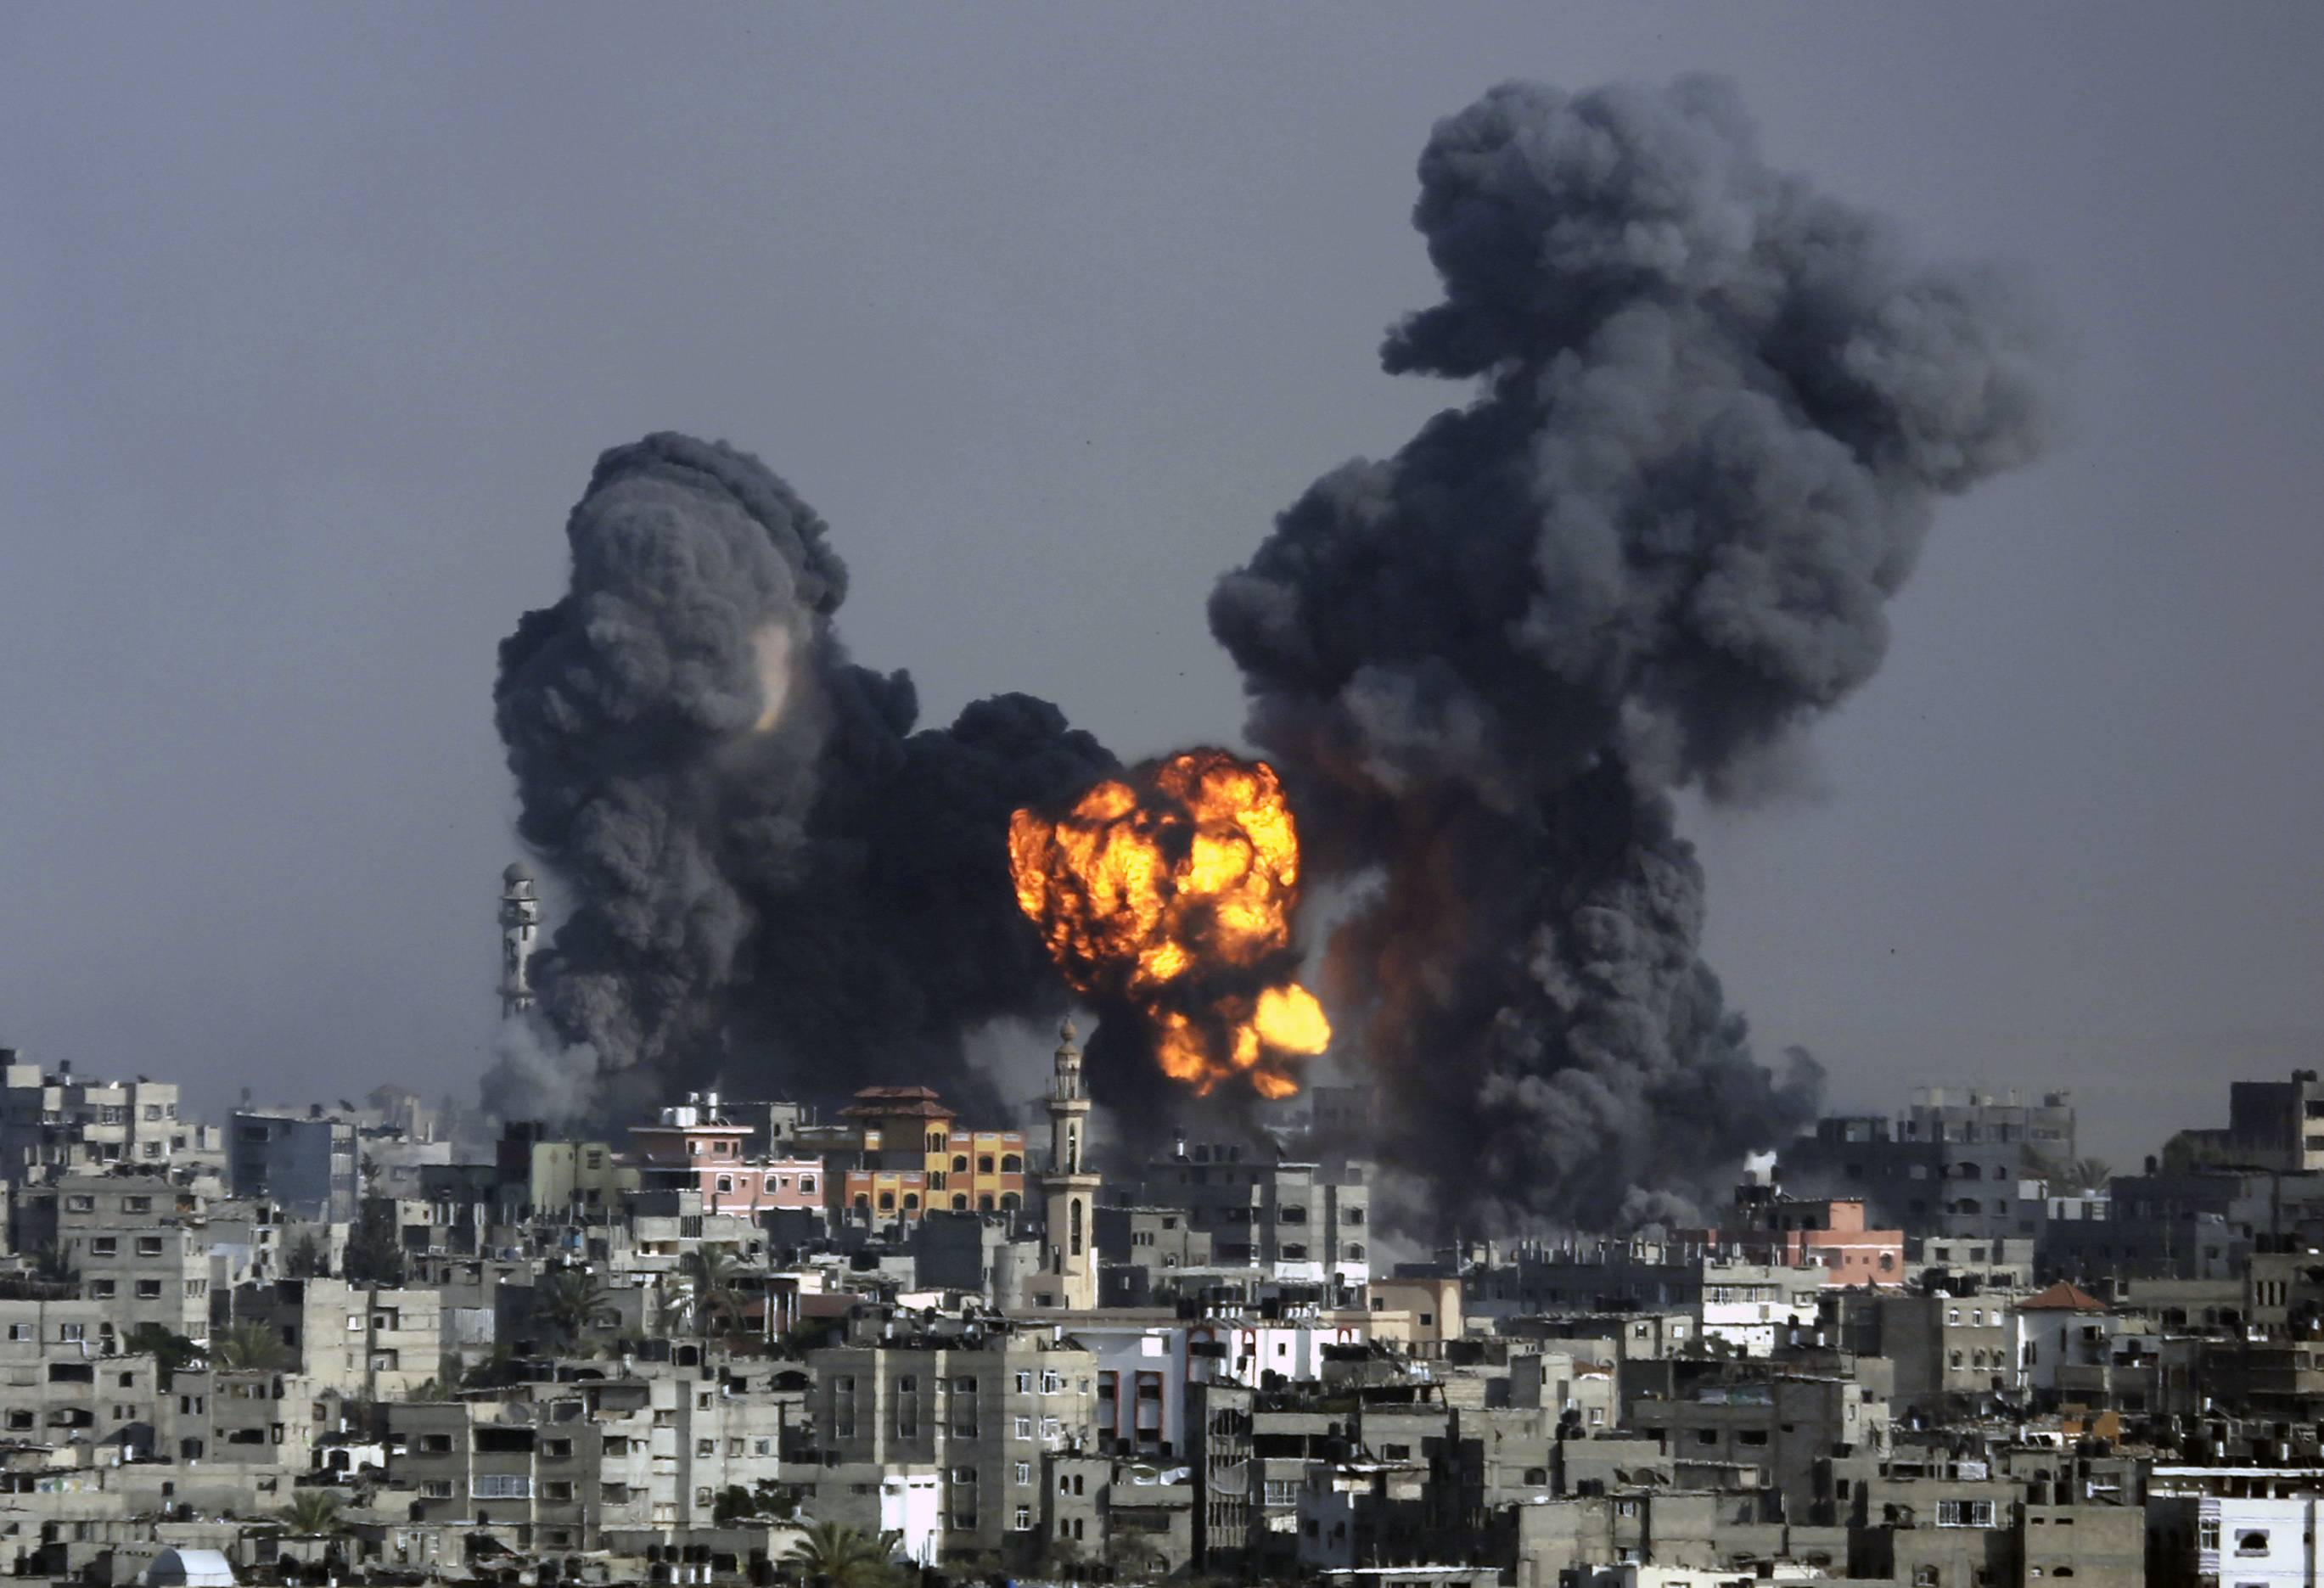 Smoke and fire from the explosion of an Israeli strike rise over Gaza City, Tuesday, July 22, 2014, as Israeli airstrikes pummeled a wide range of locations along the coastal area and diplomatic efforts intensified to end the two-week war.